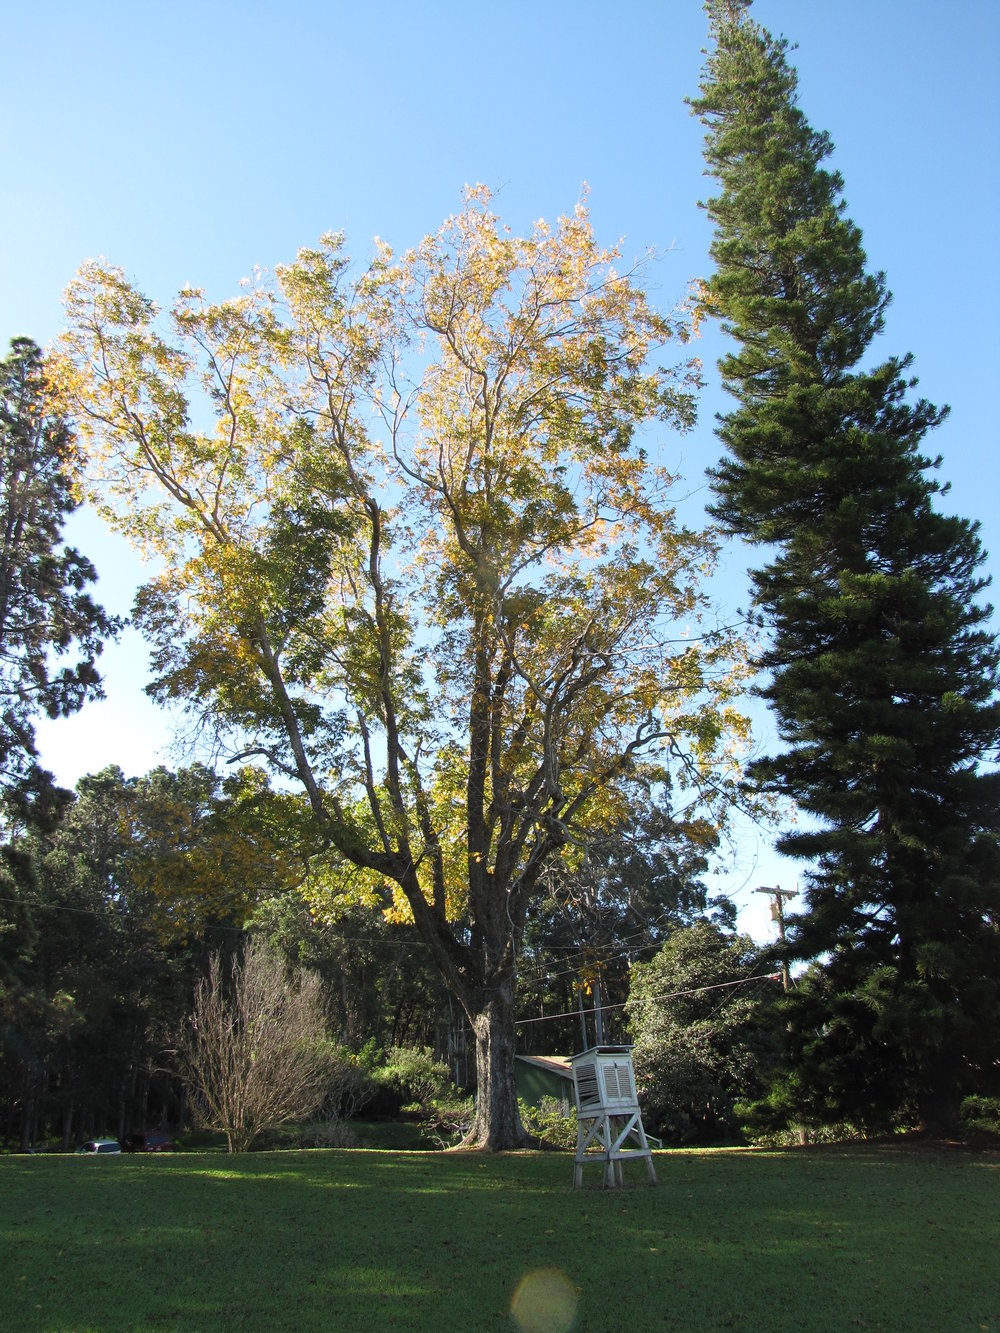 """""""   starr-110209-0550-Carya_illinoinensis-habit_fall_colors-MISC_Piiholo-Maui   """" by    Forest and Kim Starr    is licensed under    CC BY 2.0"""